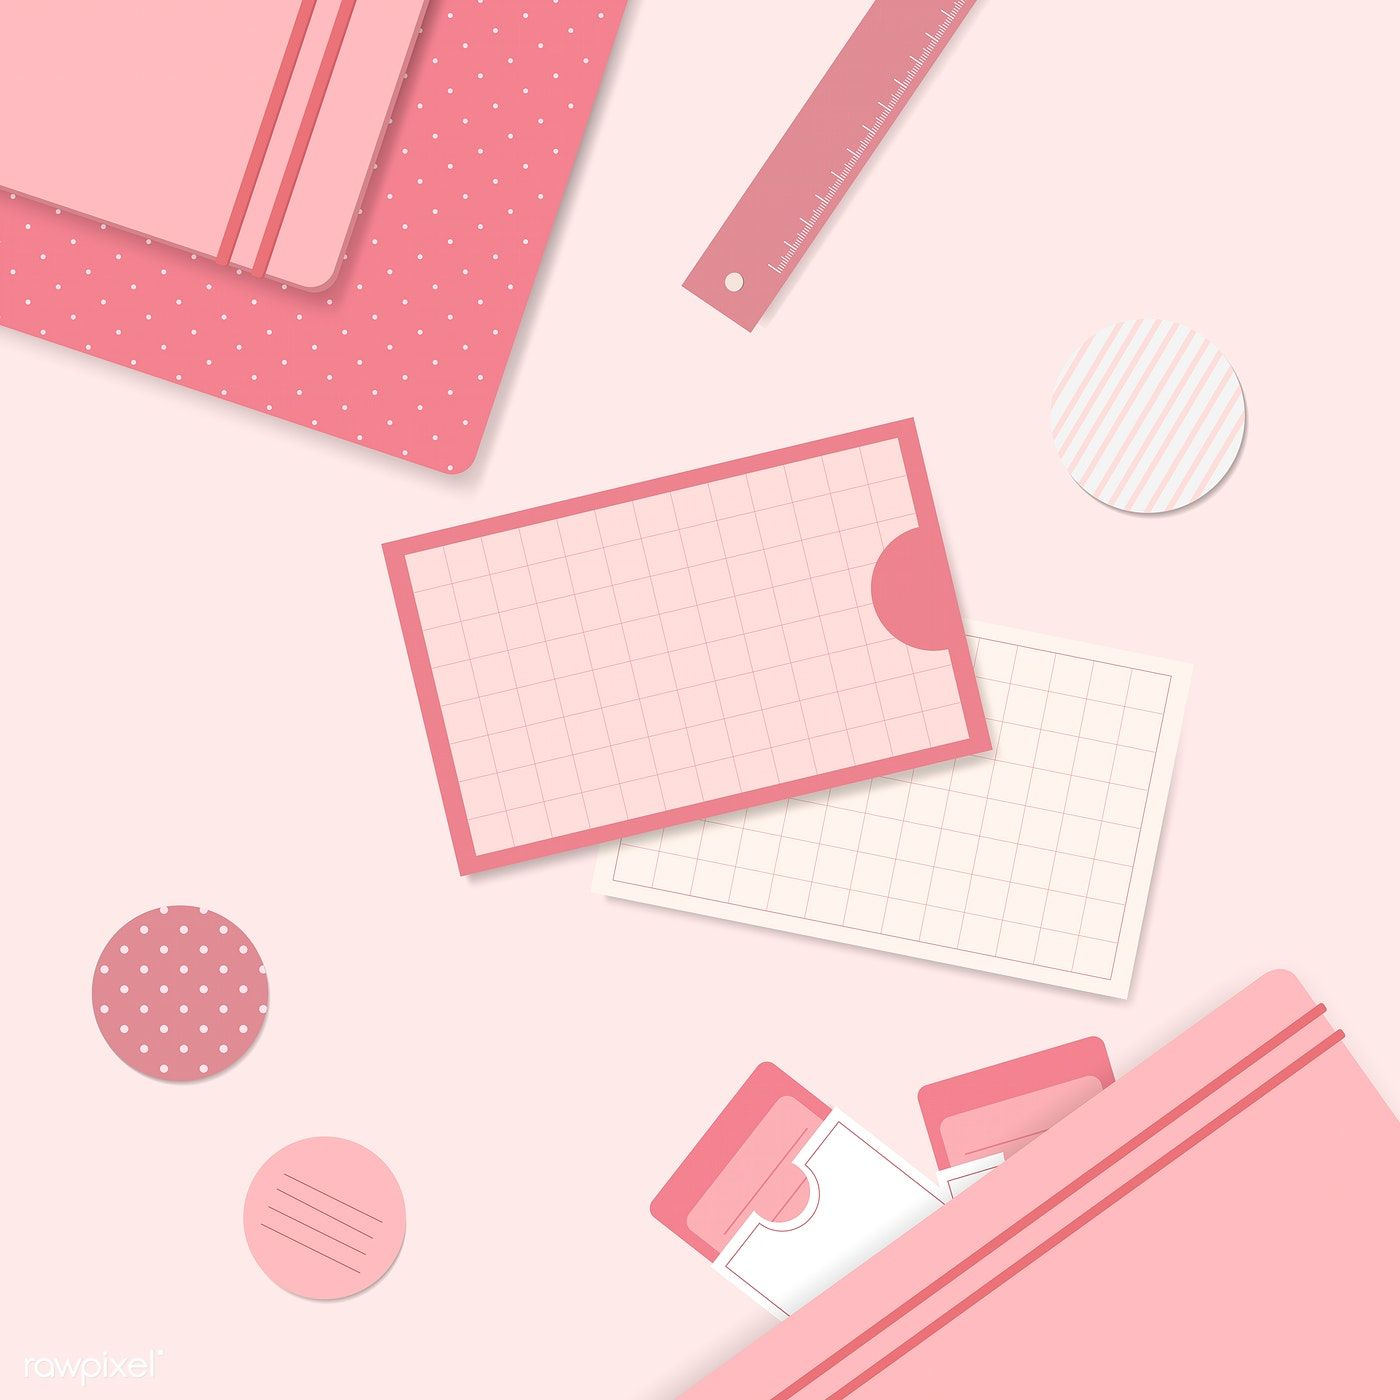 Download Premium Vector Of Pink Stationery Planner Set Vector 1209407 Pink Stationery Math Wallpaper Planner Notepad